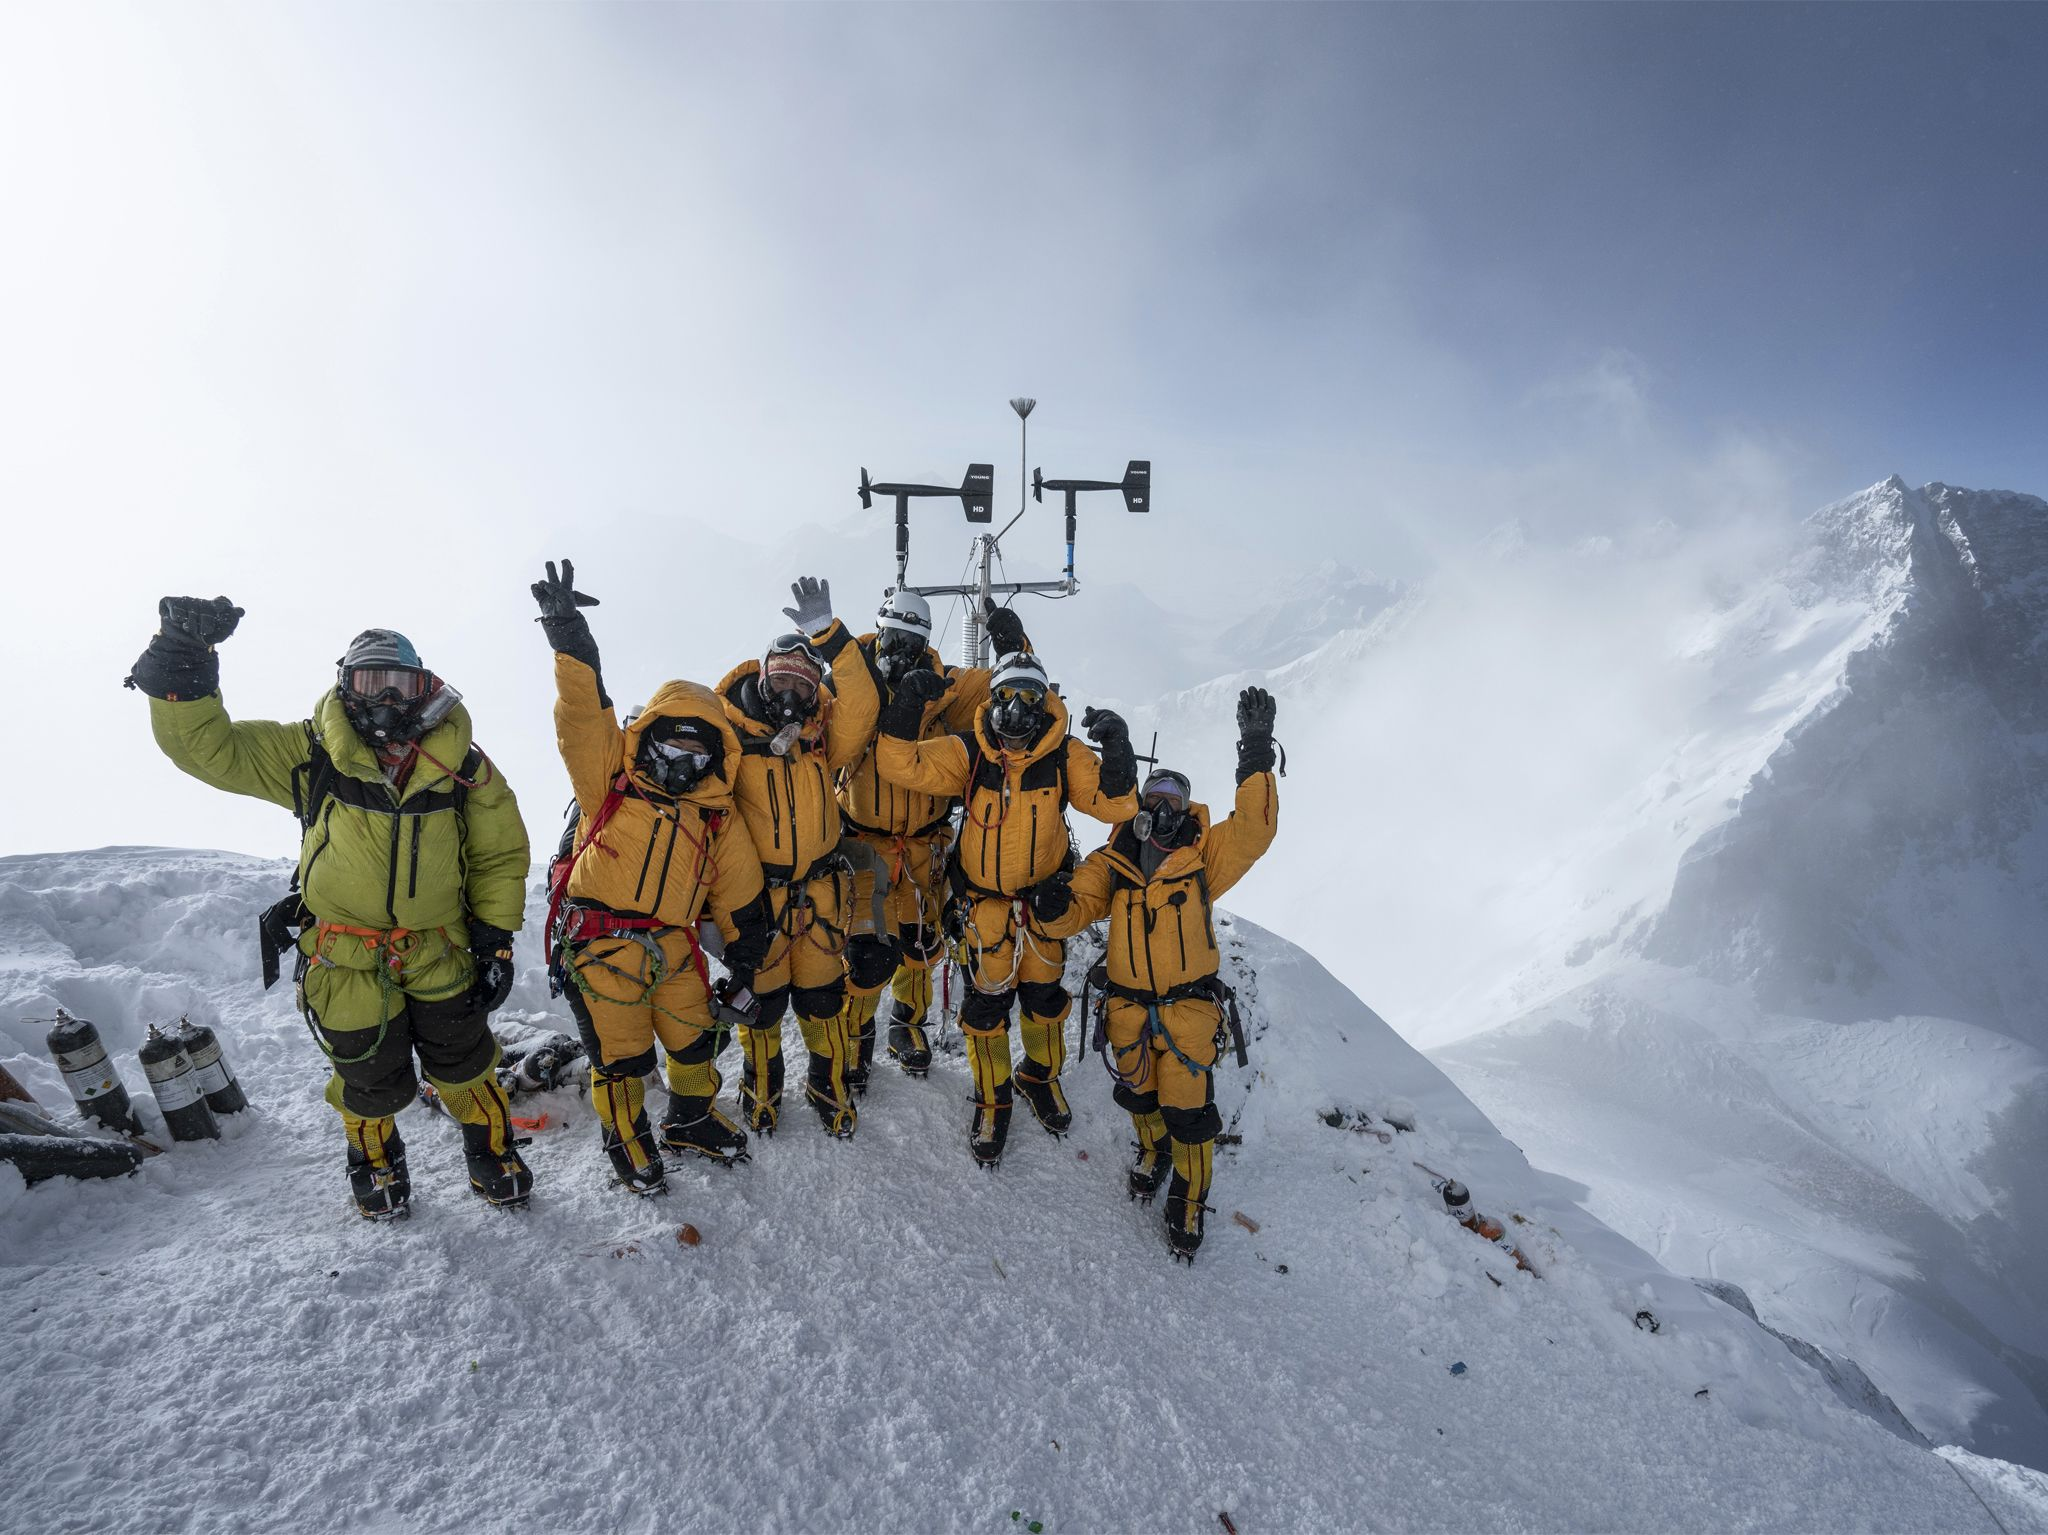 At 8,430 meters above sea level, members of the National Geographic and Rolex Perpetual Planet... [Photo of the day - July 2020]